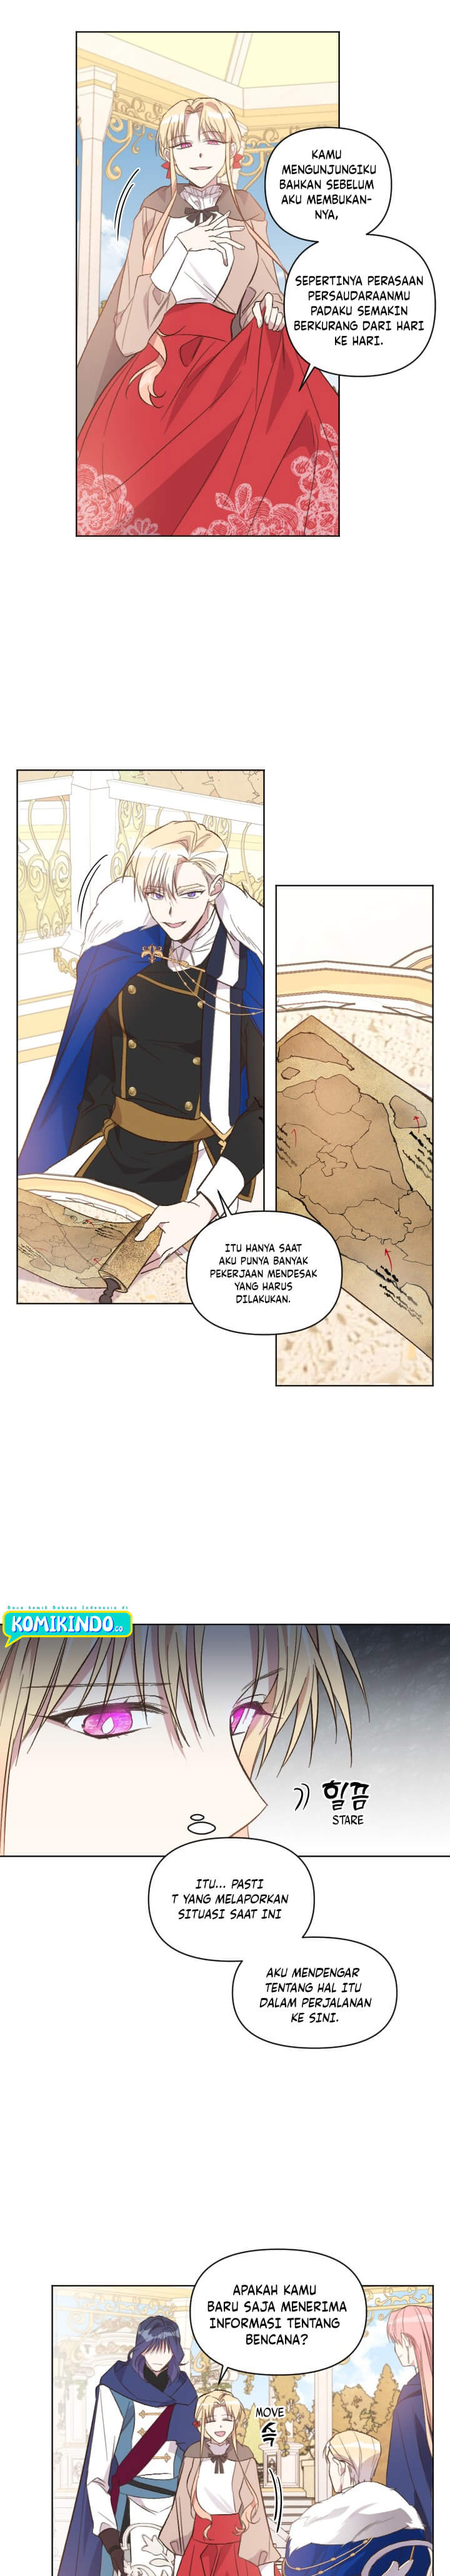 Asirhart Kingdom Aide Chapter 33